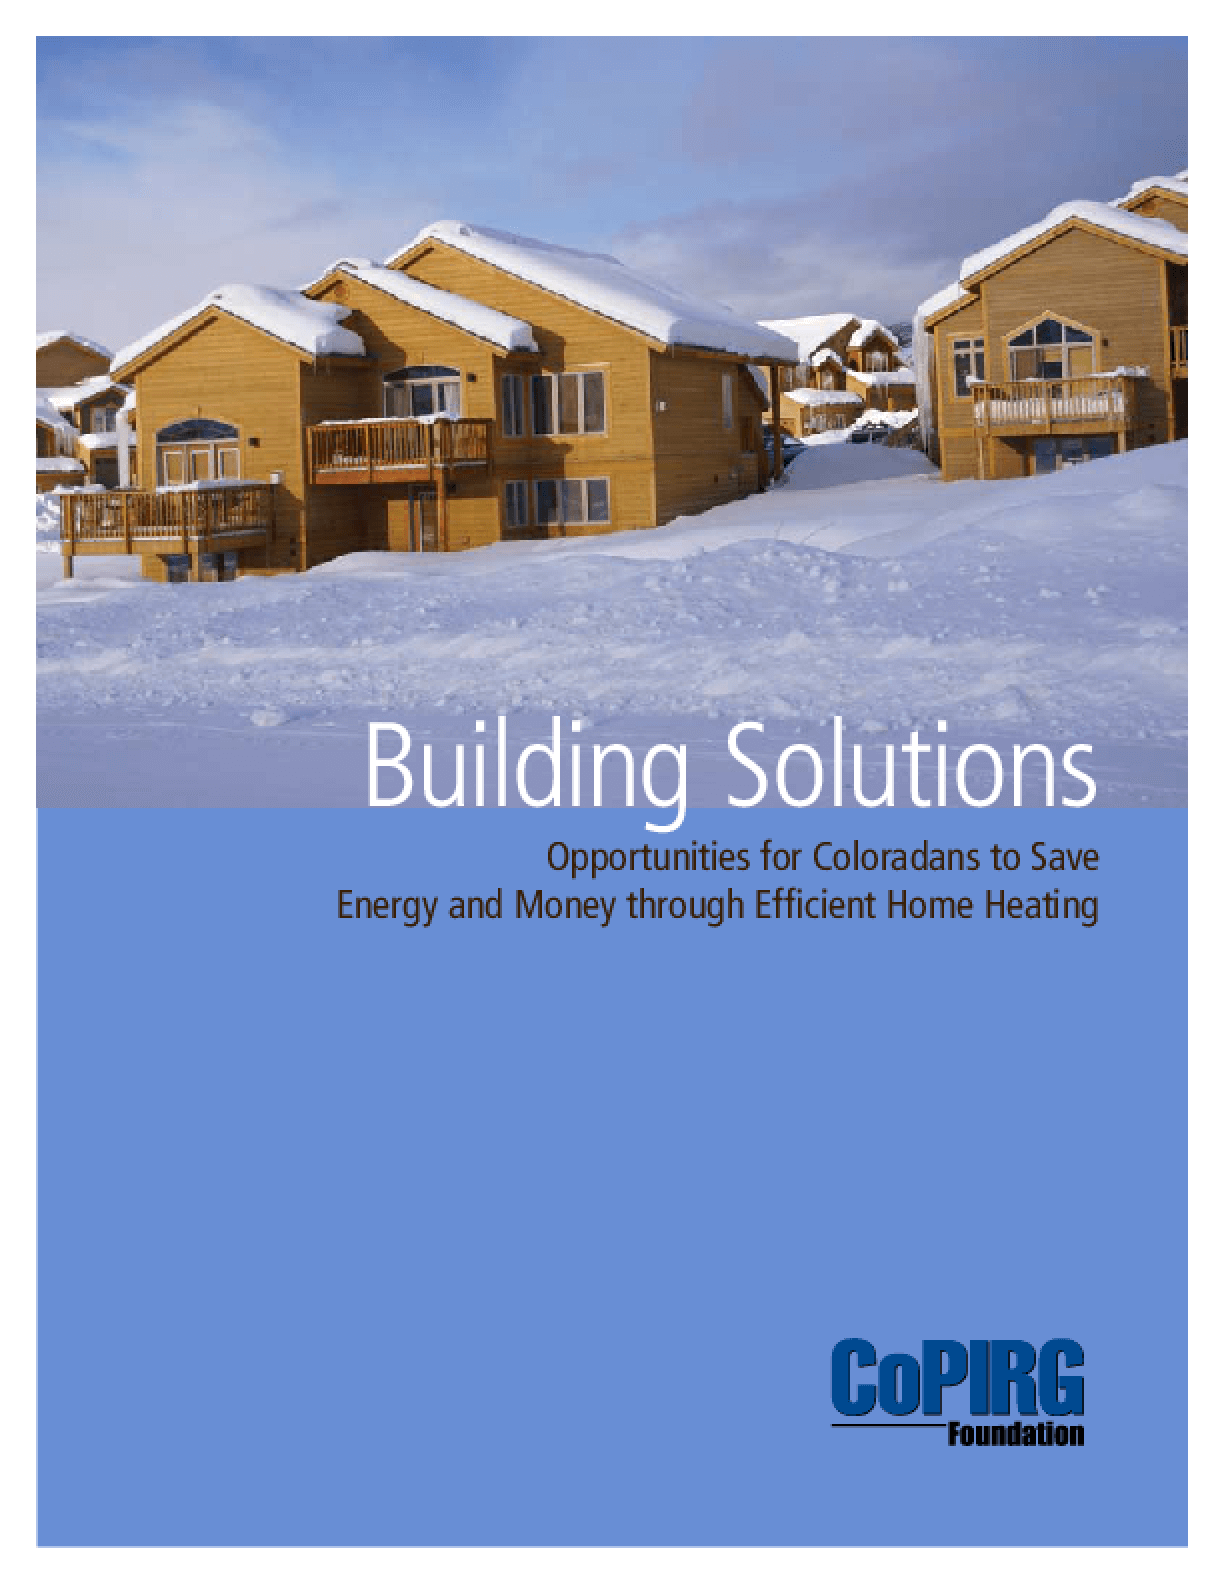 Building Solutions: Opportunities for Coloradans to Save Energy and Money Through Efficient Home Heating